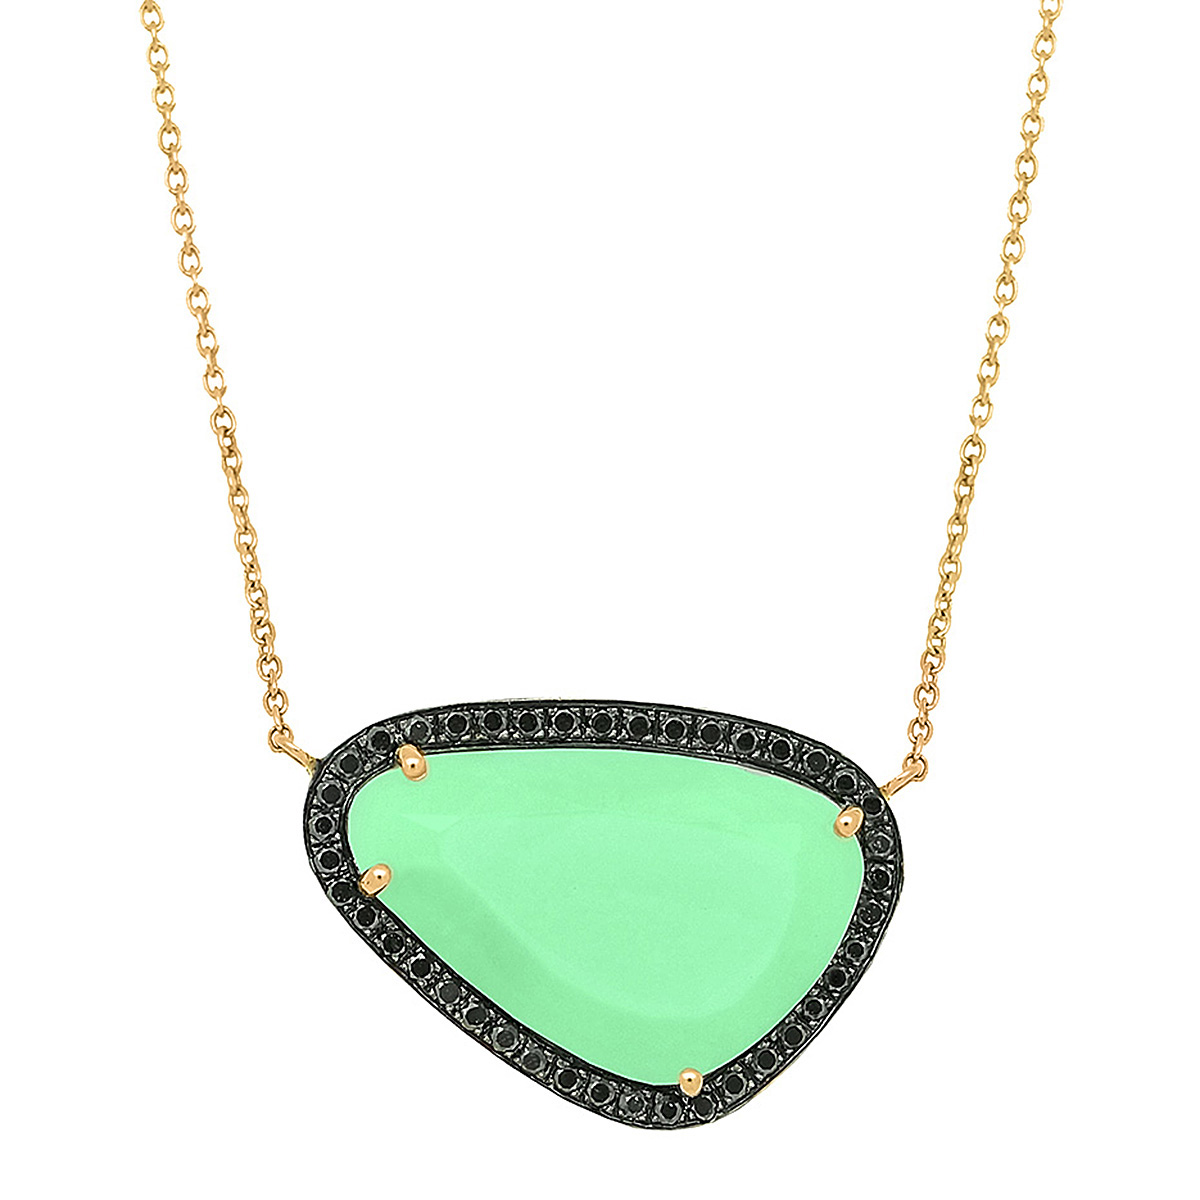 necklace necklaces gem margaret collections products solow chrysoprase